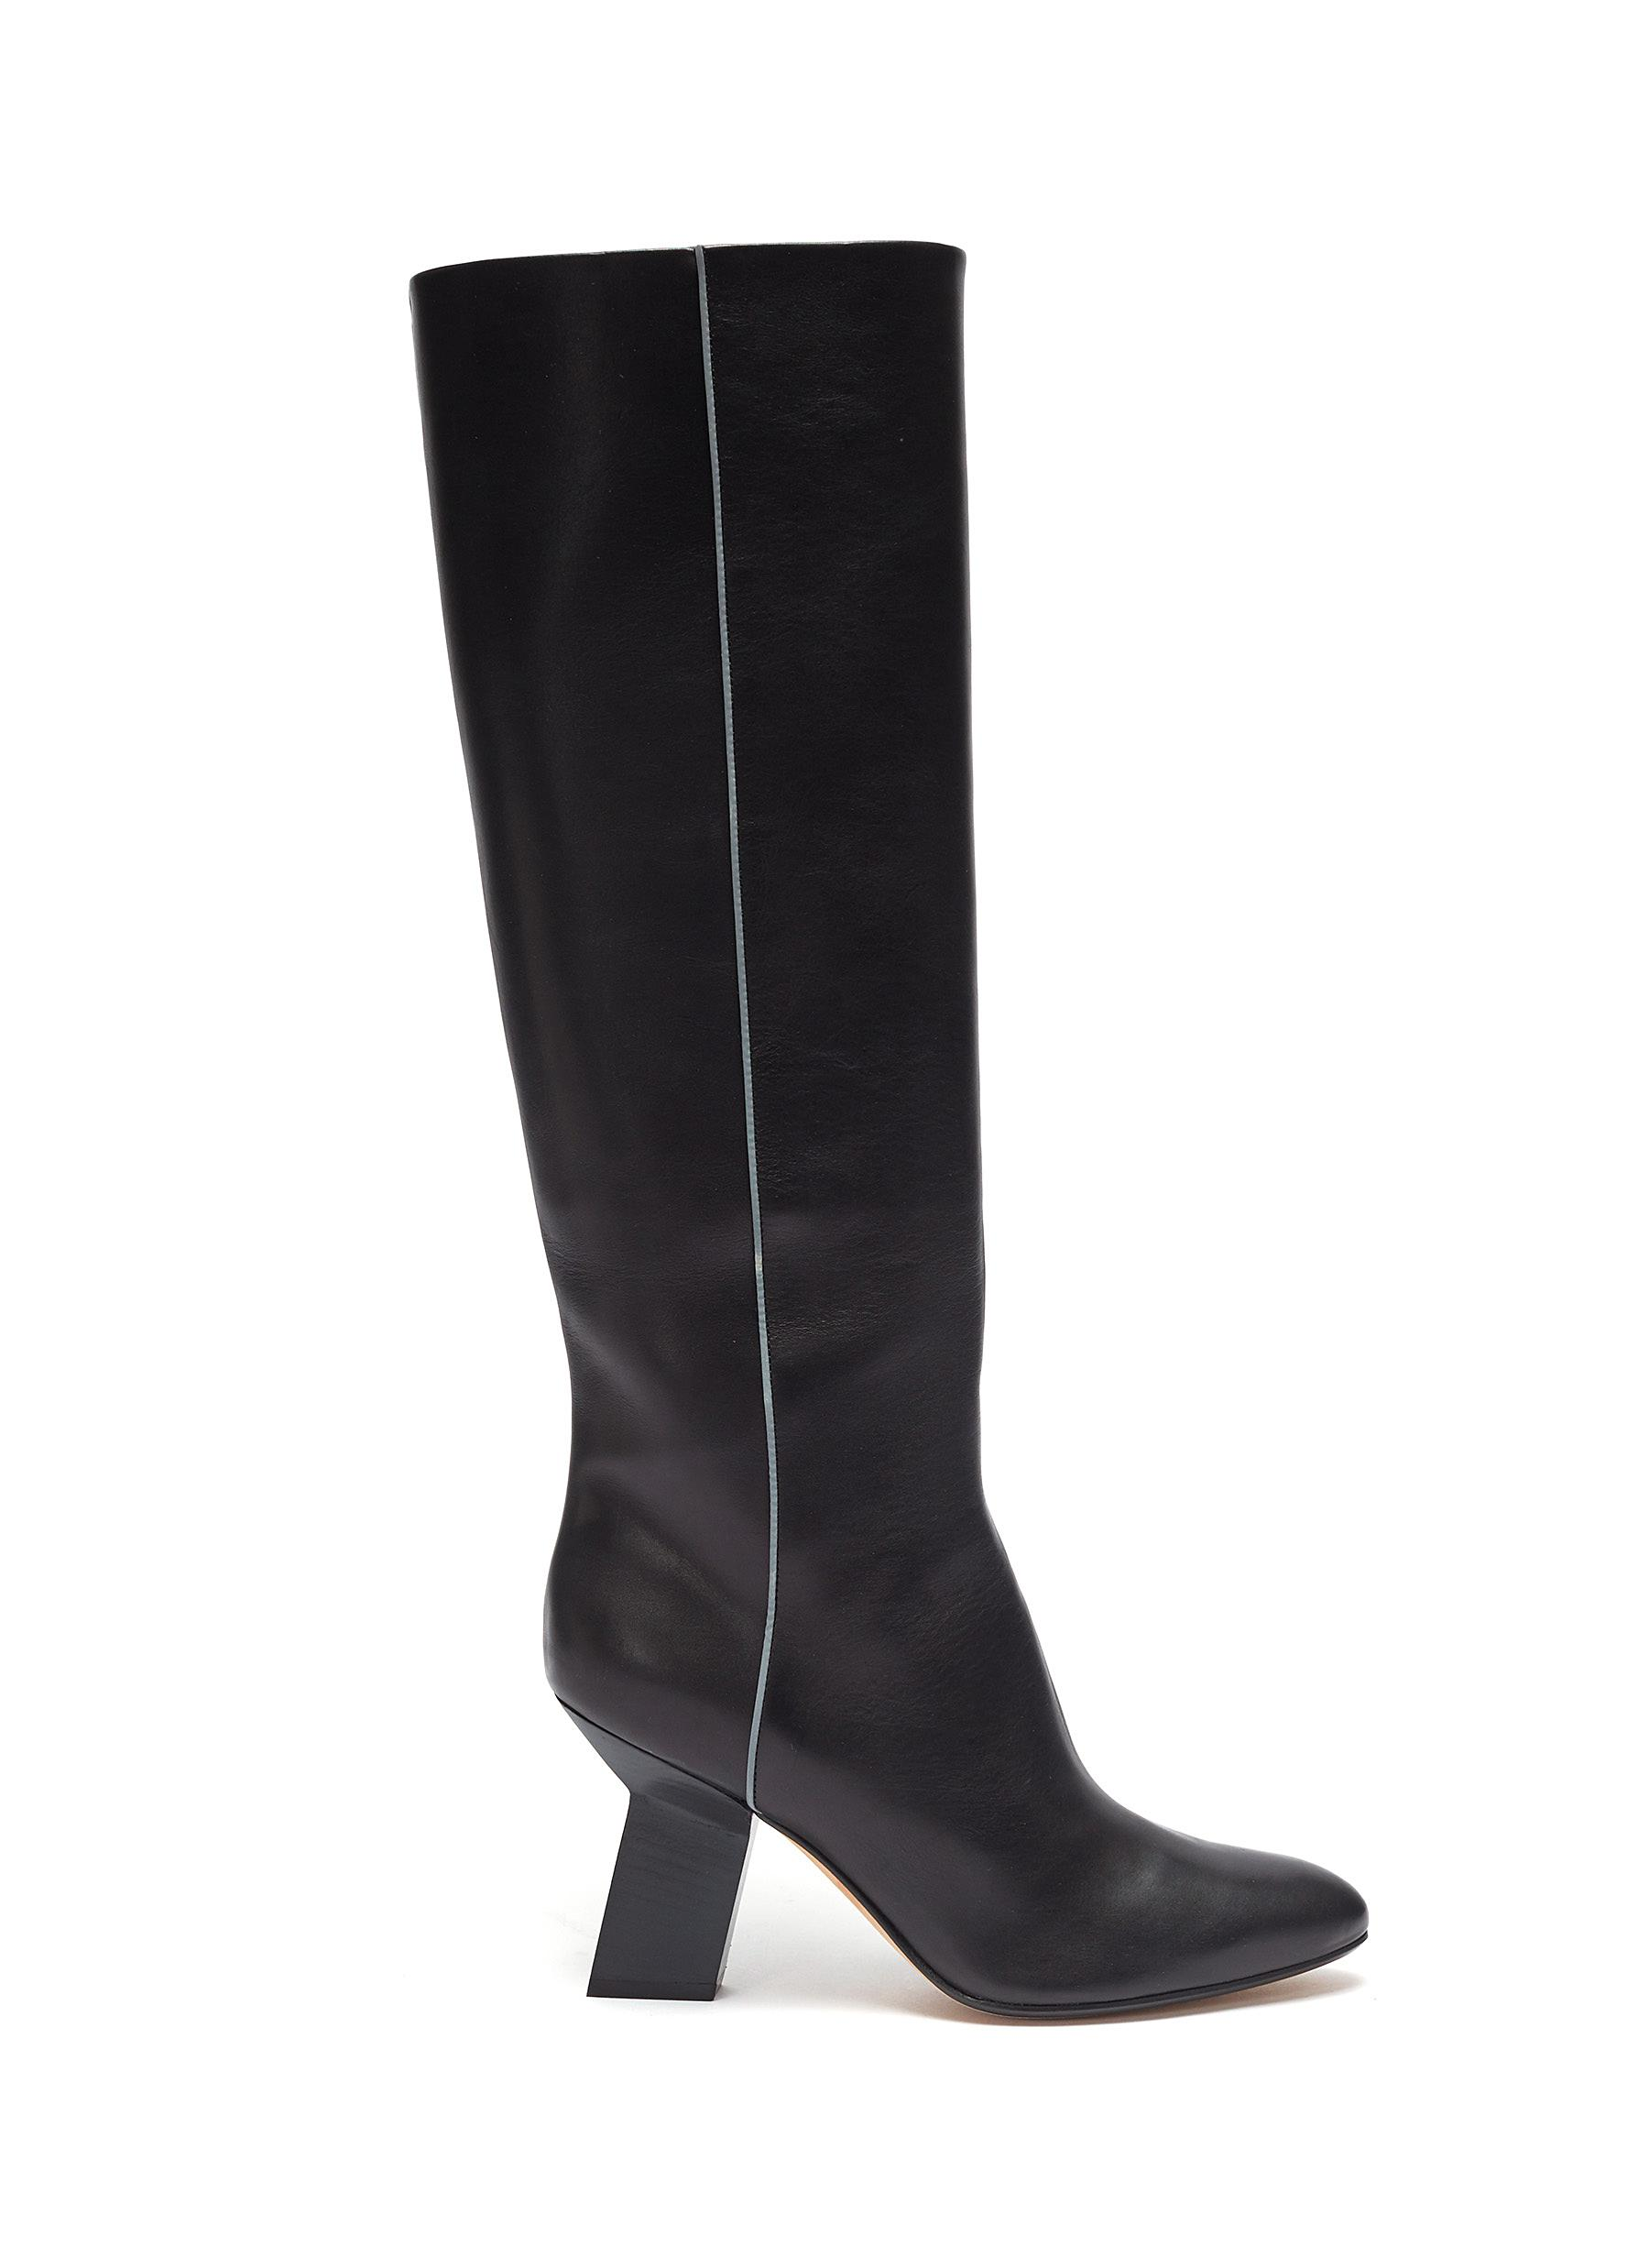 Angular heel thigh high leather boots by Alchimia Di Ballin